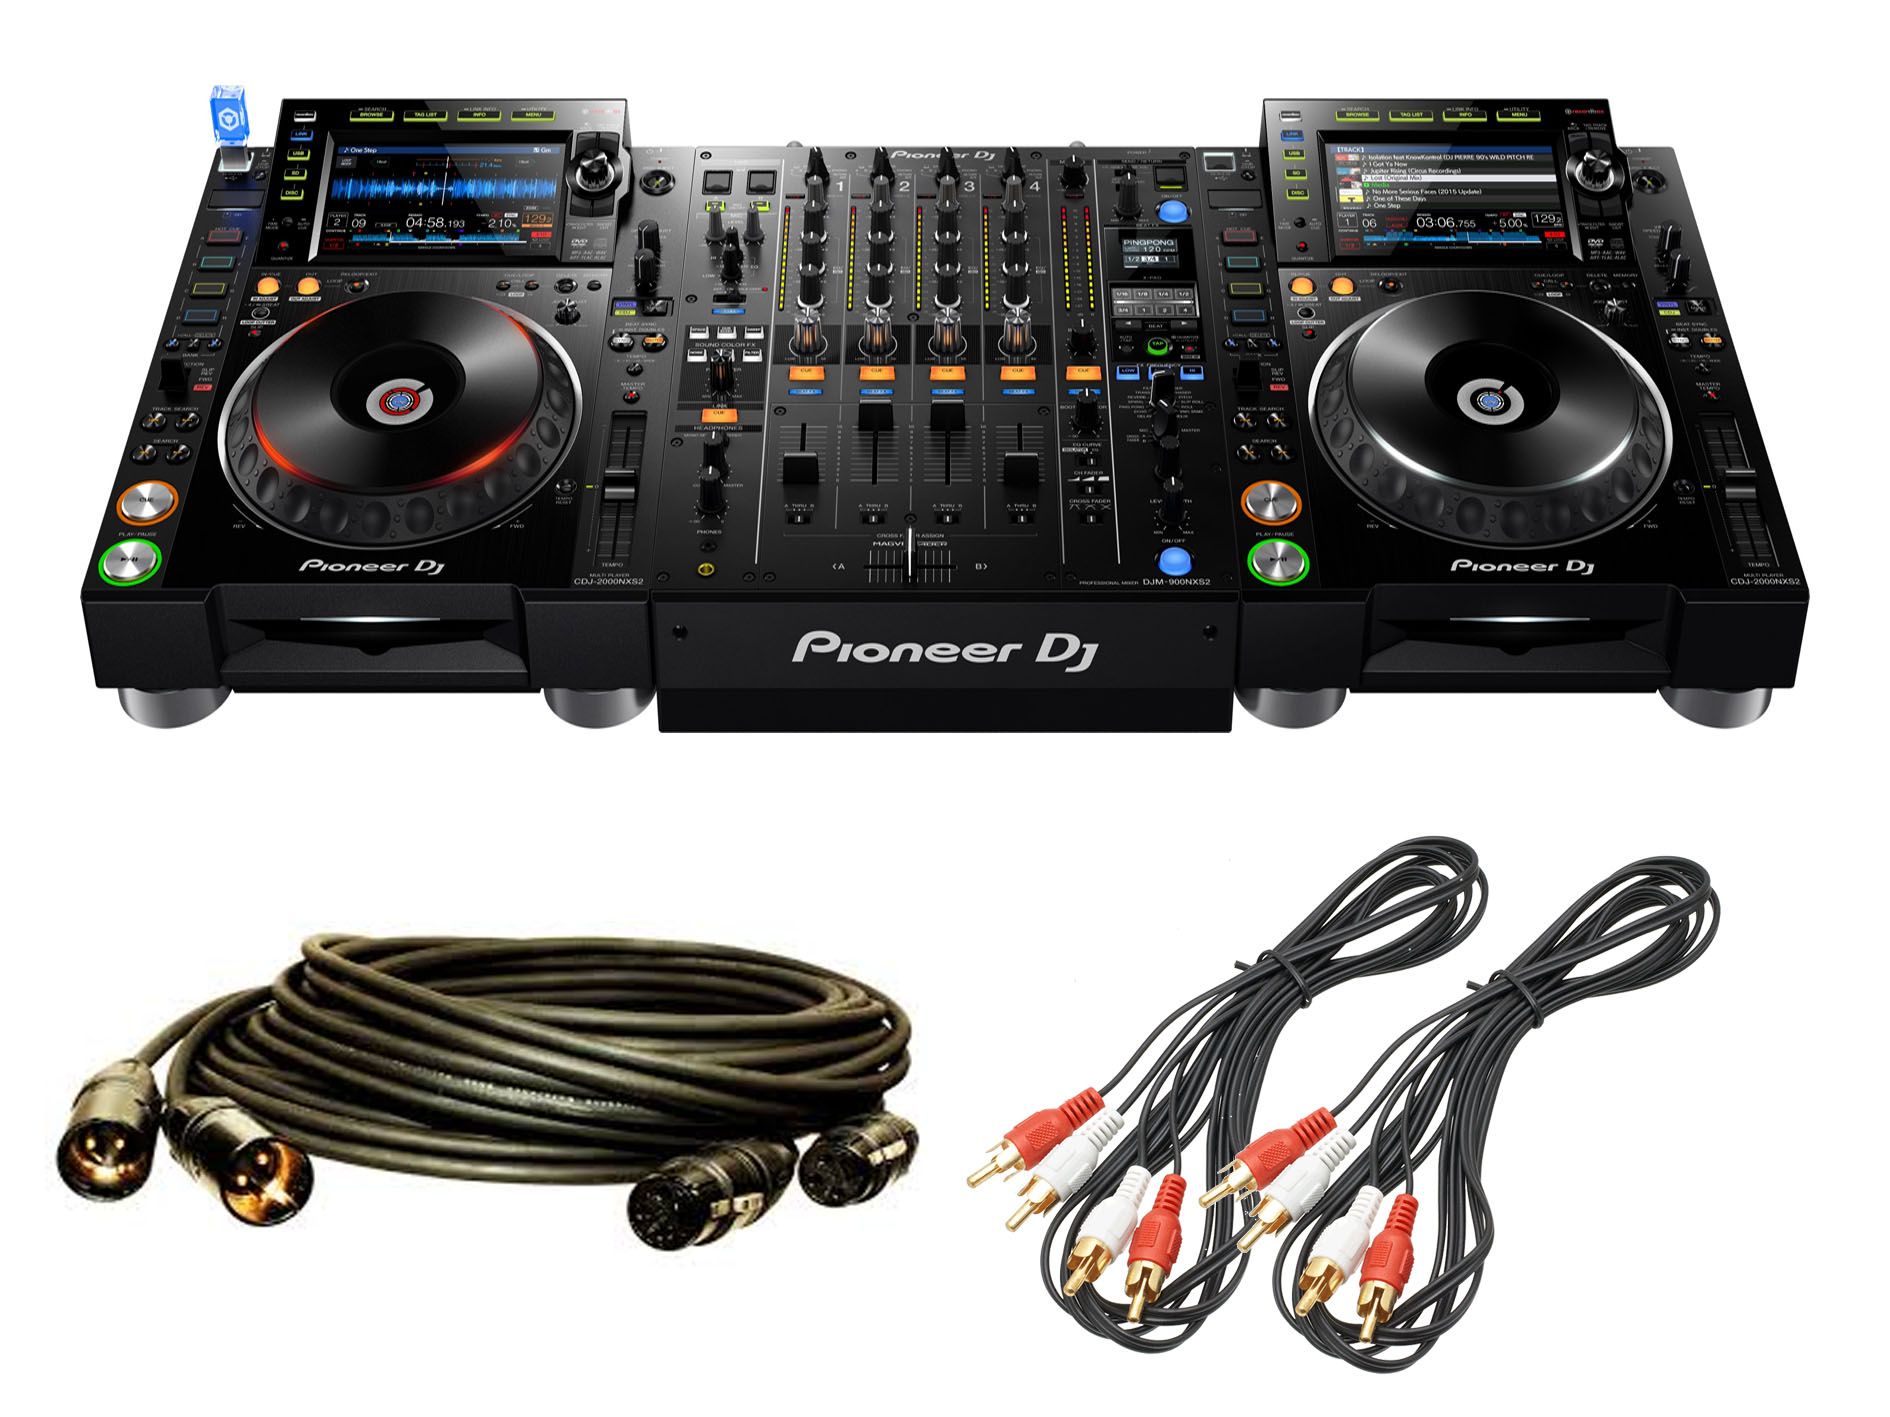 We have Pioneer CDJ 800 MK2 + DJM 700 Mixer and CDJ NXS2 2000 Nexus + DJM 900 NXS2 Mixer for Hire